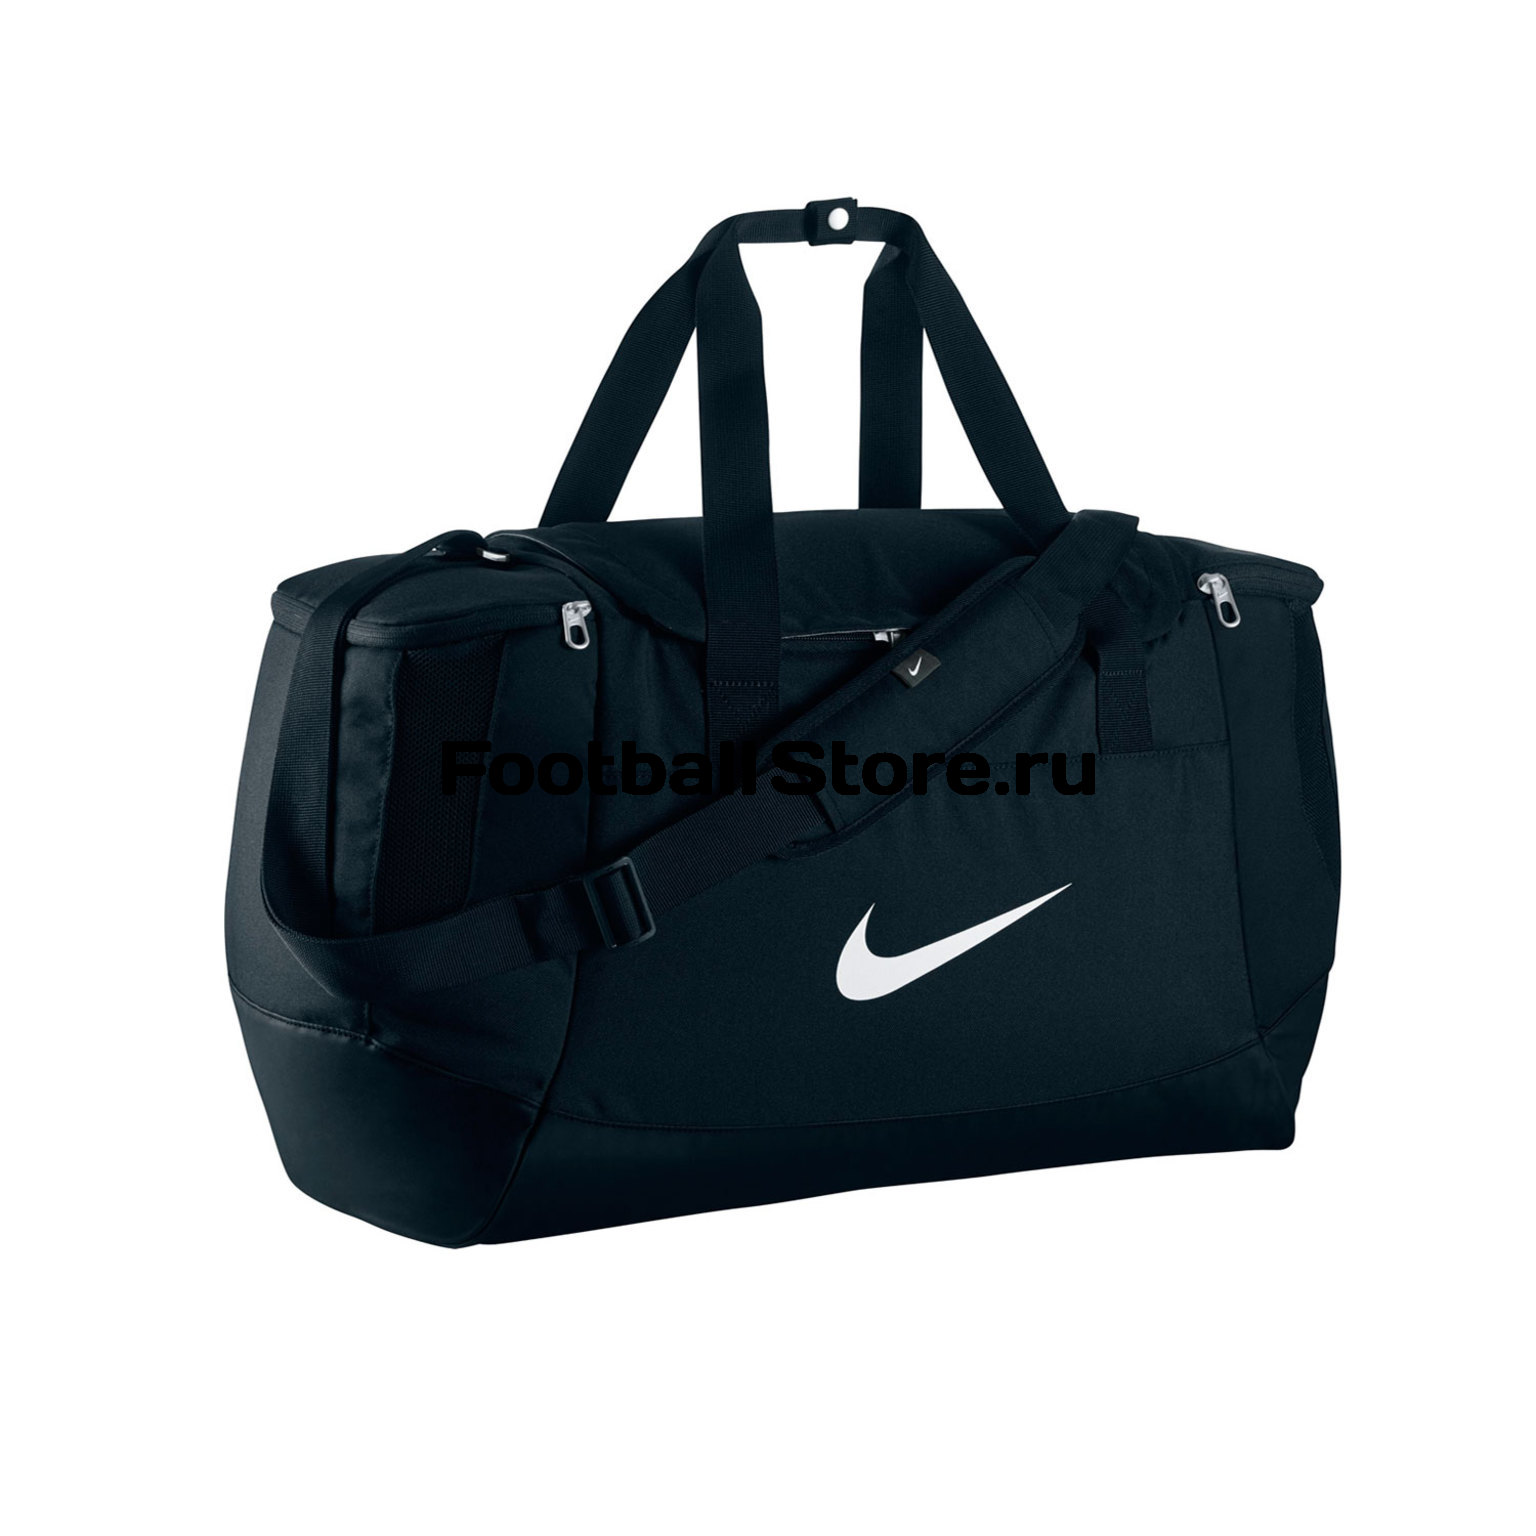 Сумки/Рюкзаки Nike Сумка Nike Club Team Swoosh Duff M BA5193-010 nike nike club team swoosh backpack